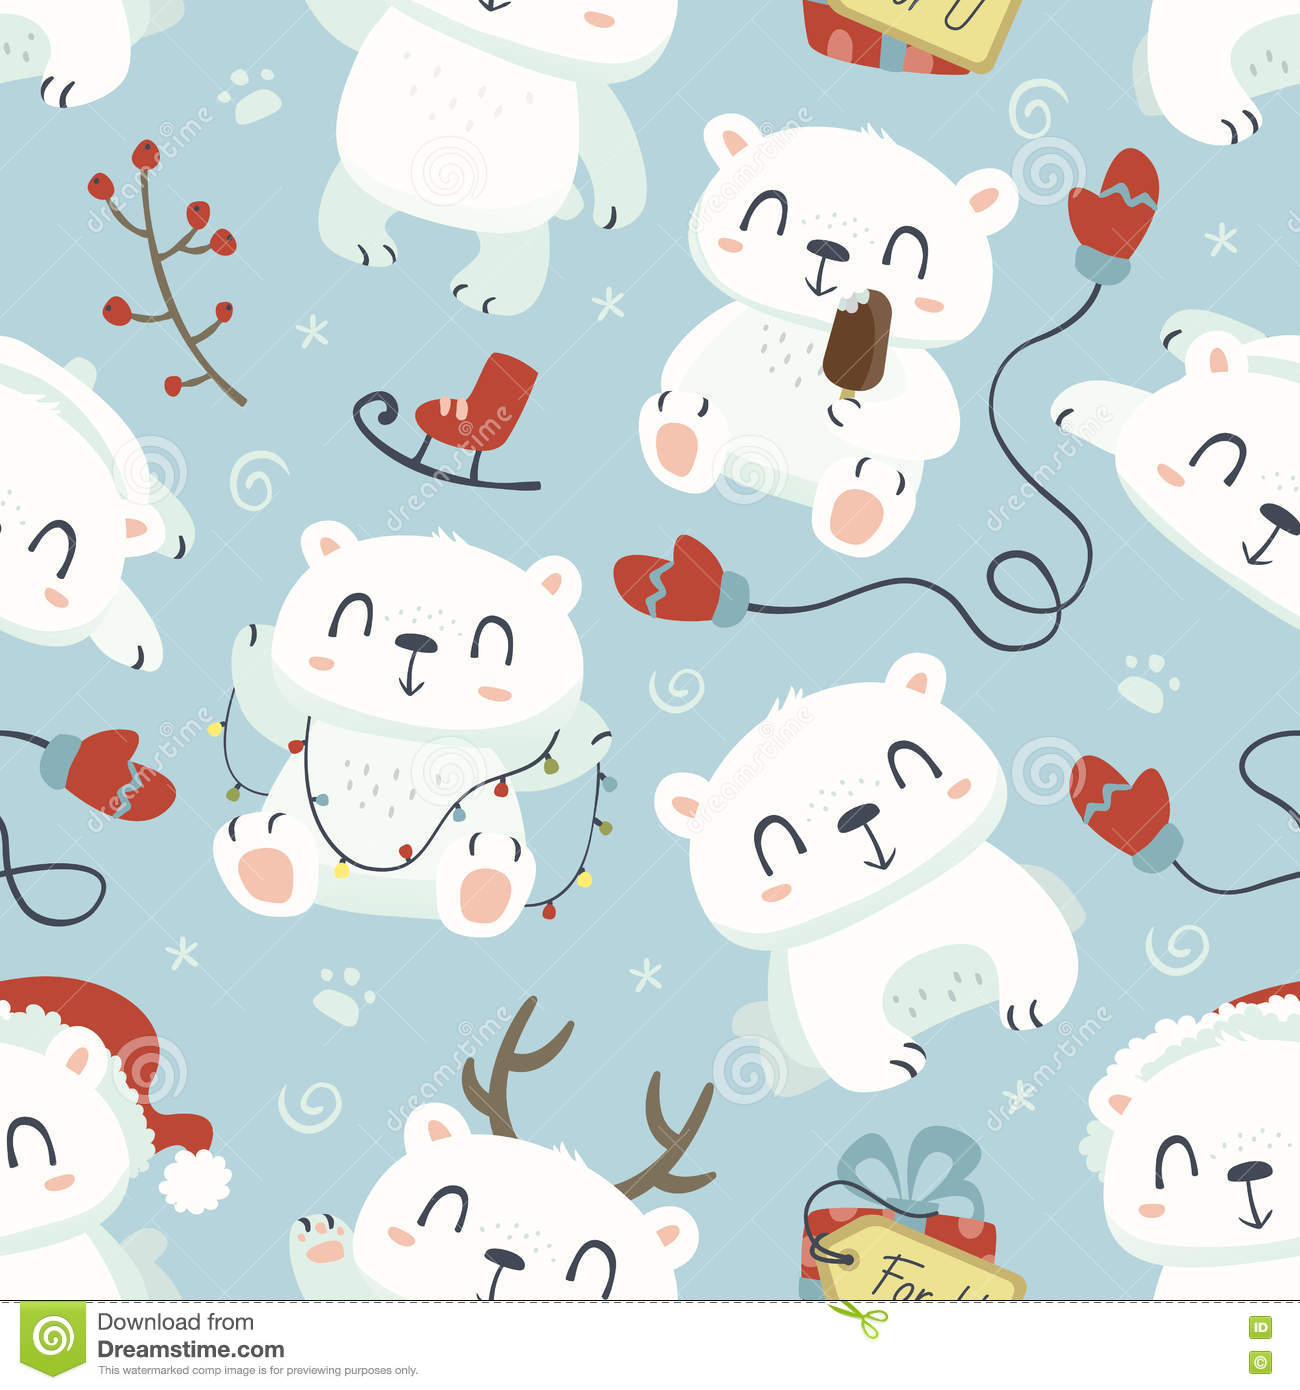 Cartoon style cute polar bear seamless pattern